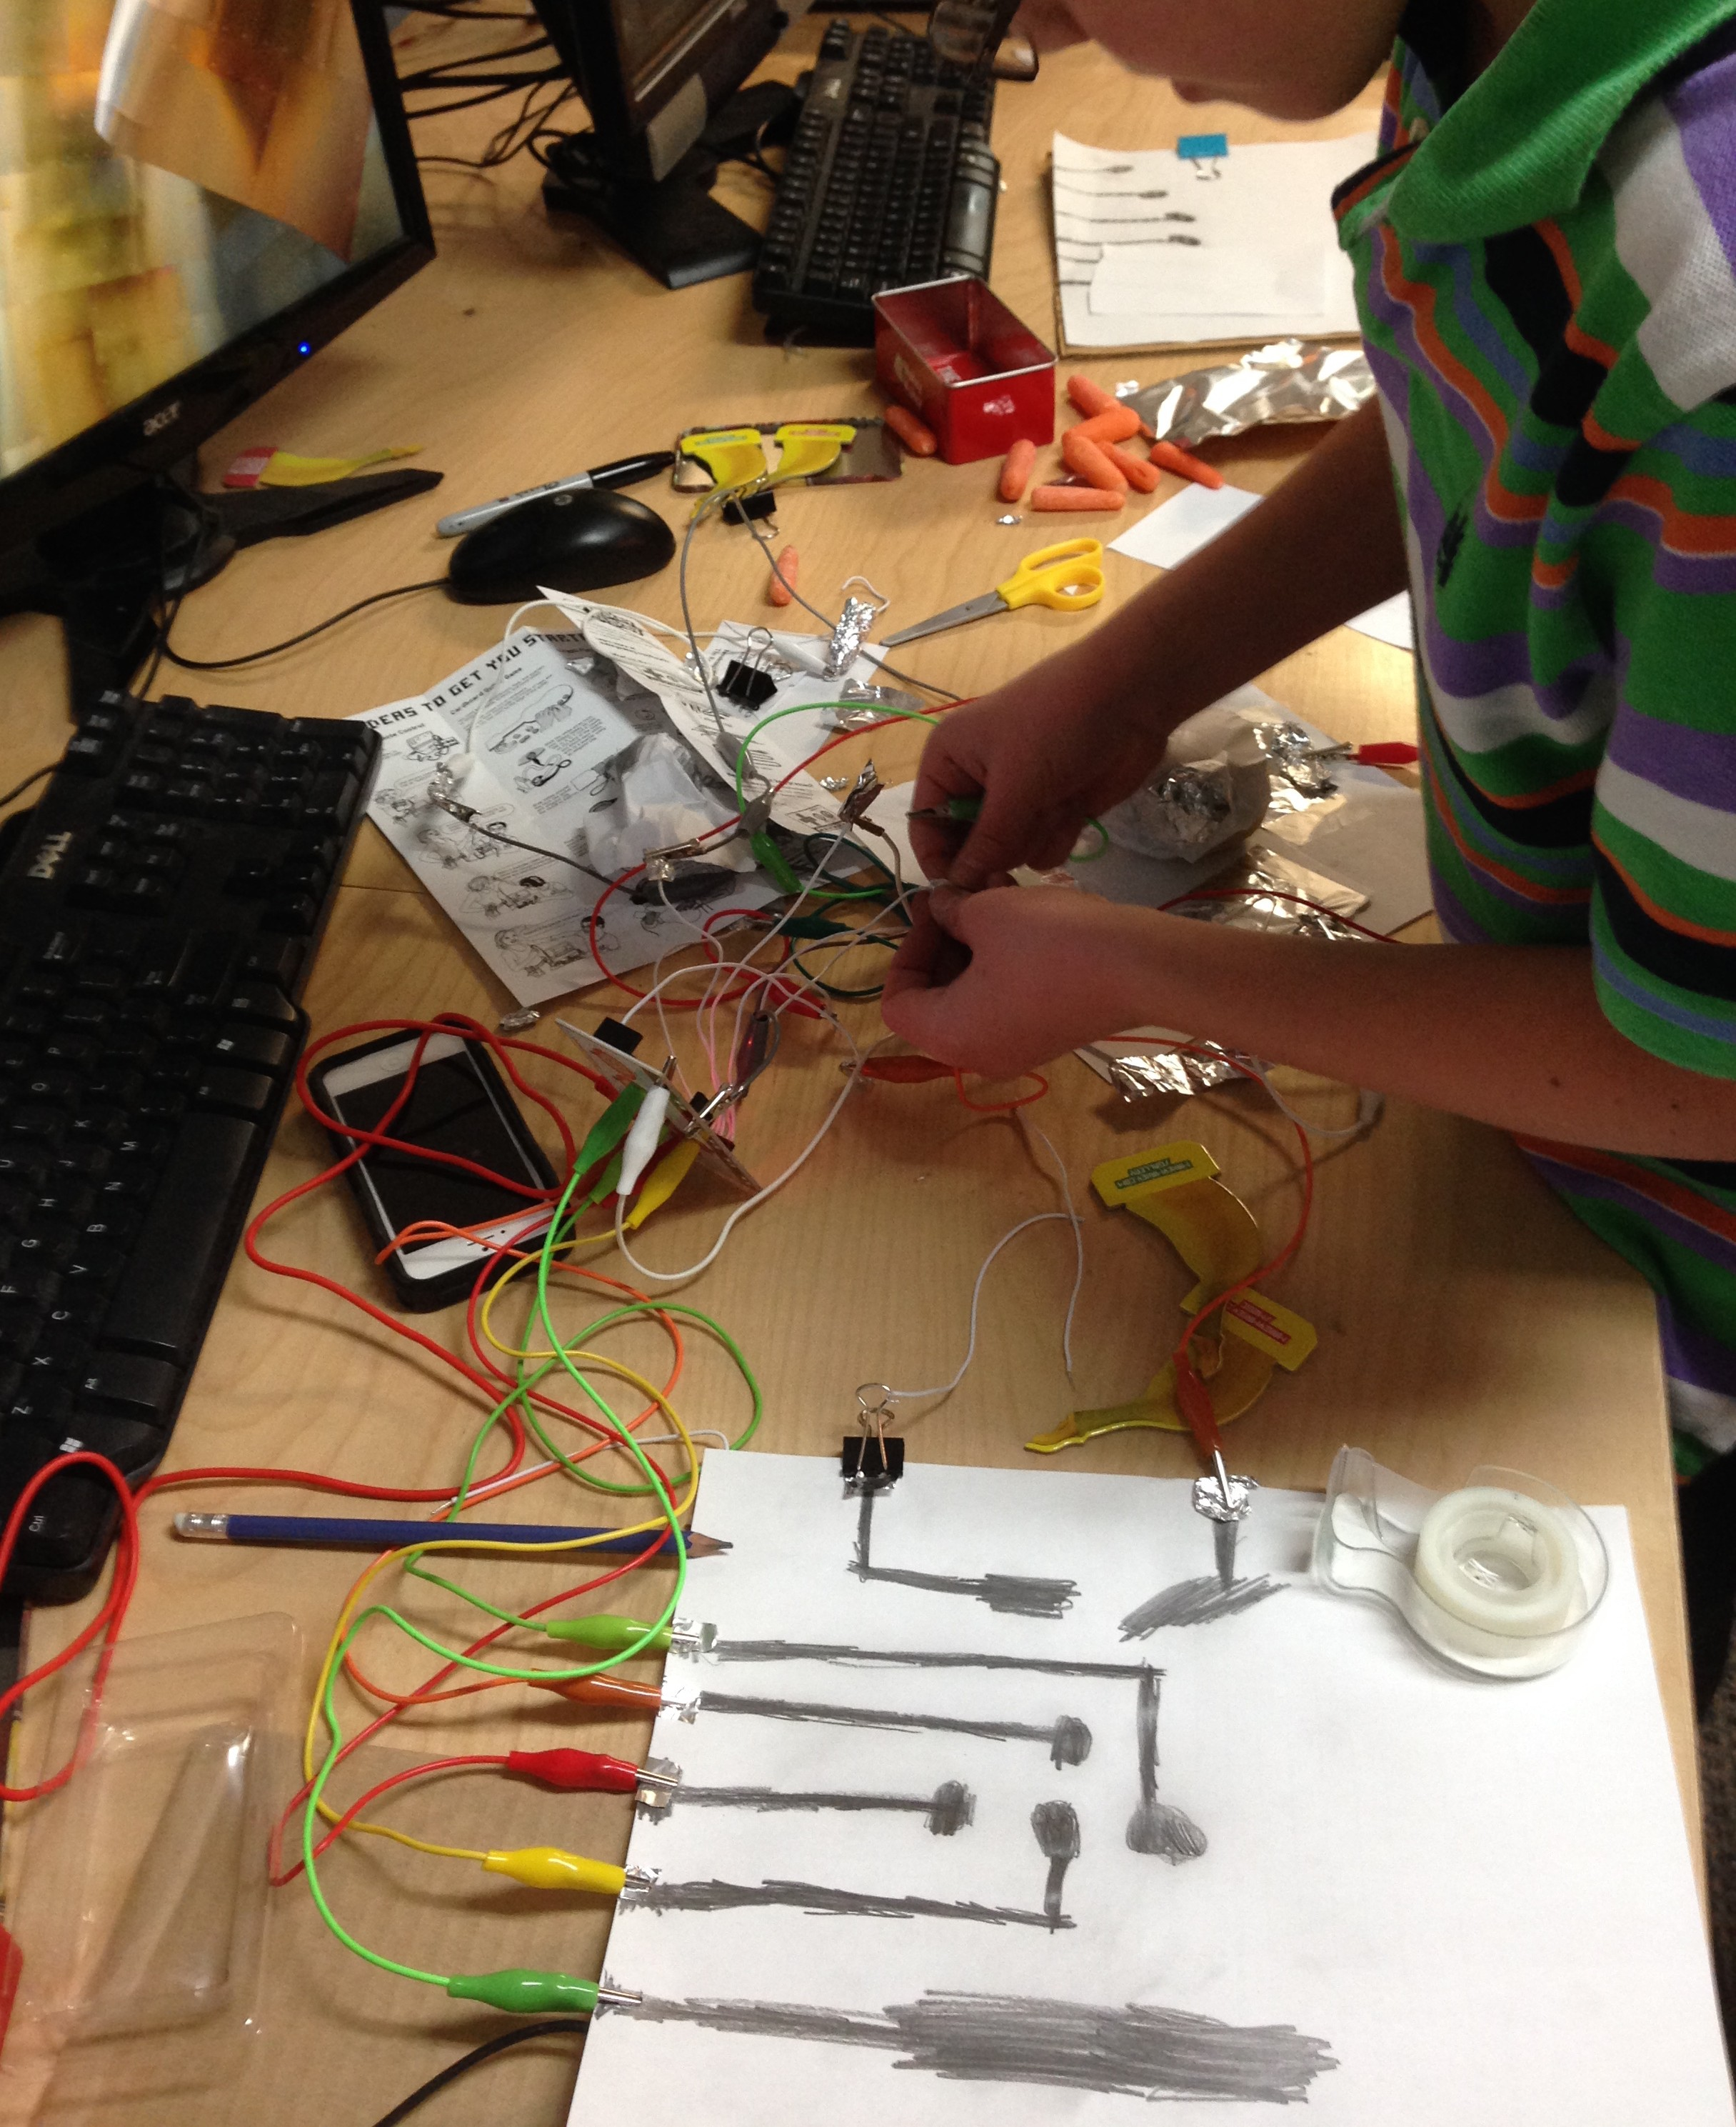 Spring Break Fun With Electronics Youth 8 14 Yrs Yukonstruct Circuit Scribe 3 During This 2 Hour Workshop We Will Explore Circuitry The Help Of Makey And Led Projects